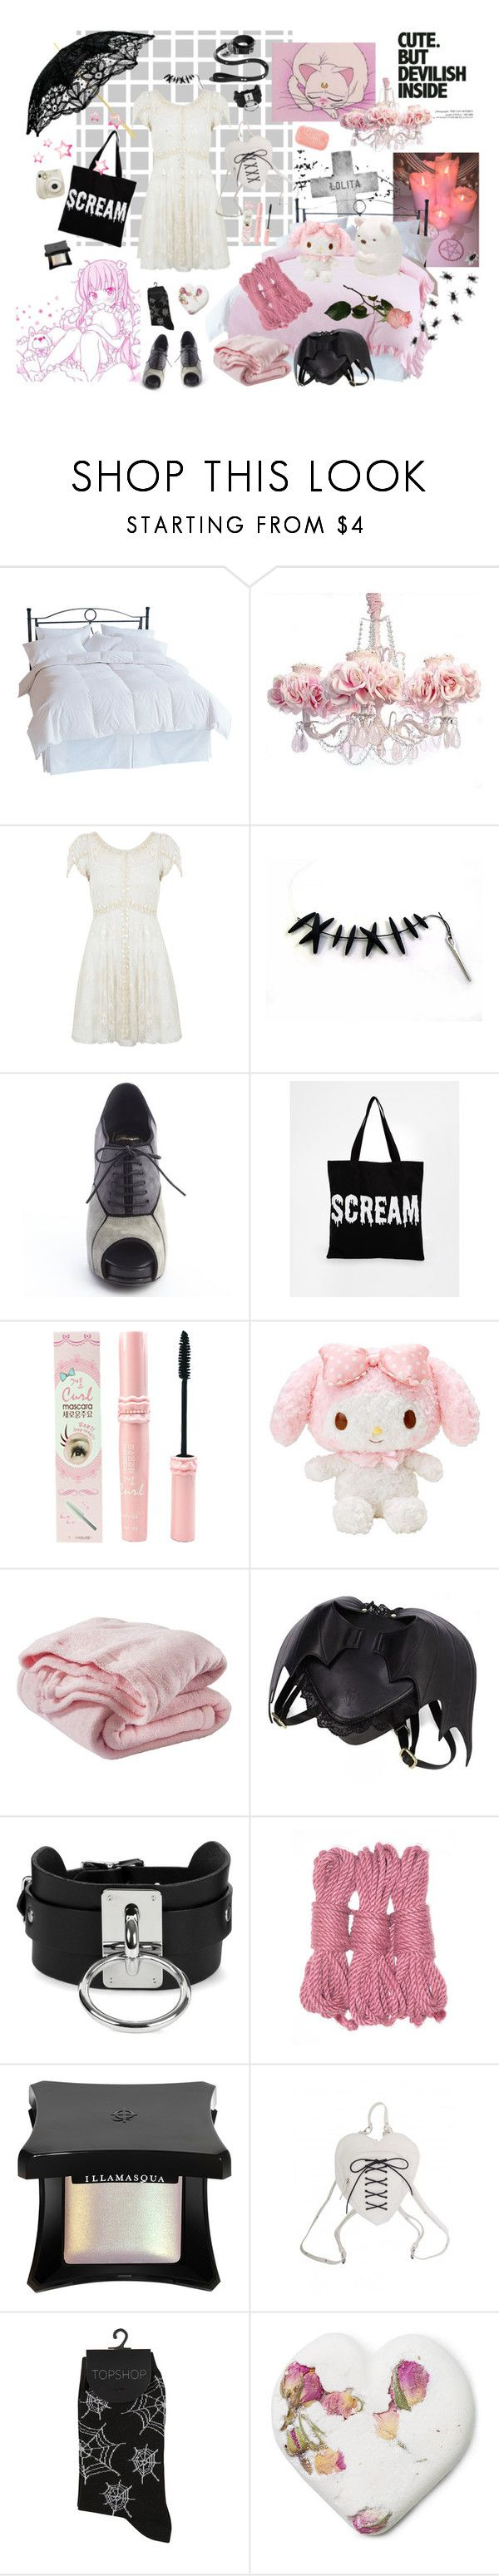 """""""daughter of the bride of frankenstein"""" by demonbabydoll ❤ liked on Polyvore featuring Supersonic, Patagonia, Shabby Chic, Miss Selfridge, Roger Vivier, ASOS, Etude House, Tokyo Rose, Circo and Zana Bayne"""